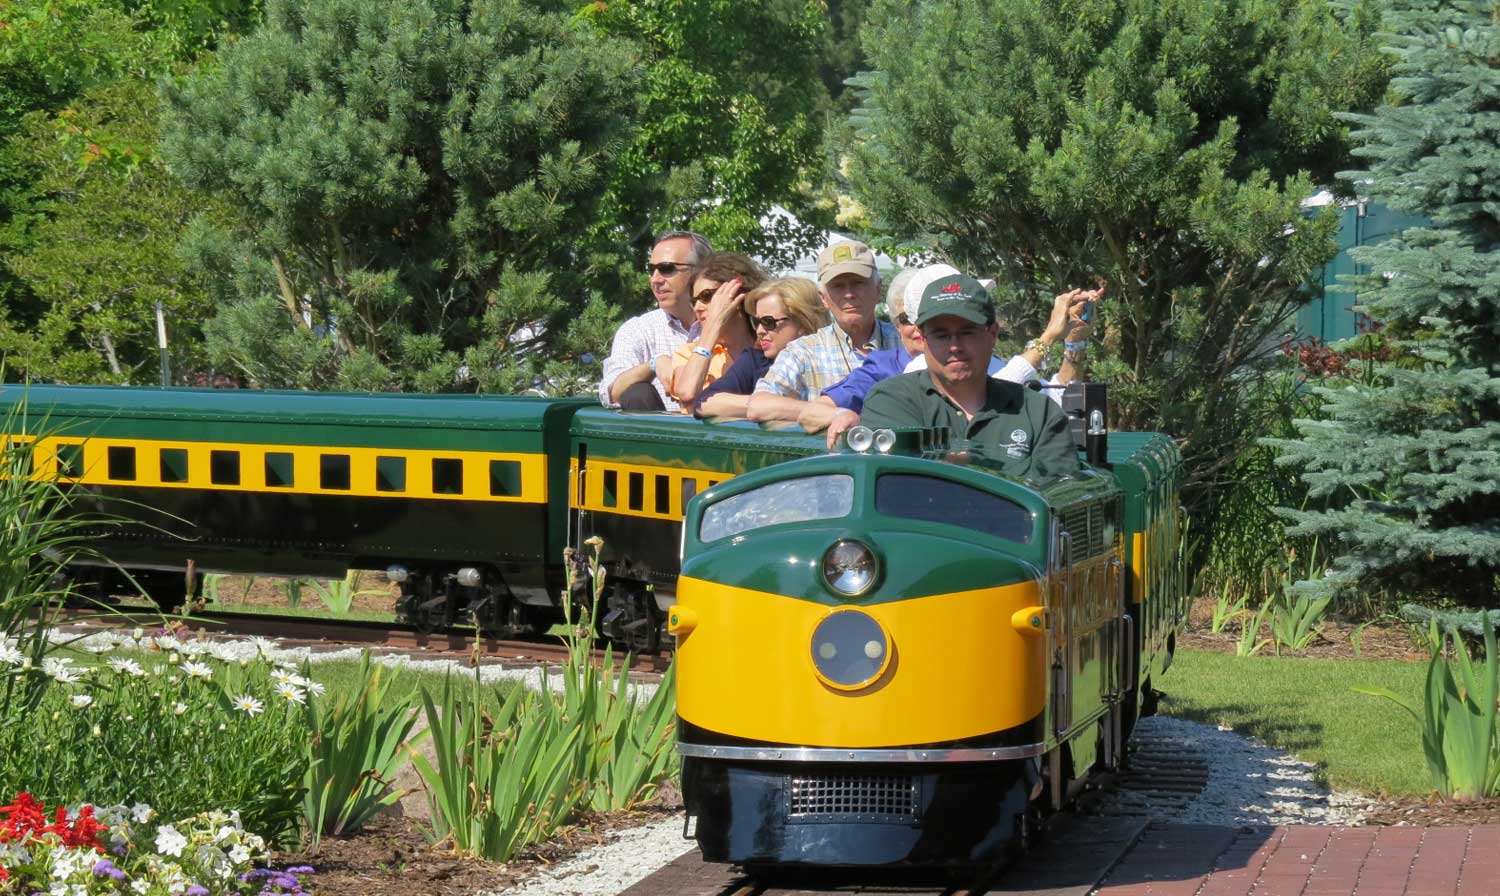 A Scenic Ride on a Vintage Train  Slider Image